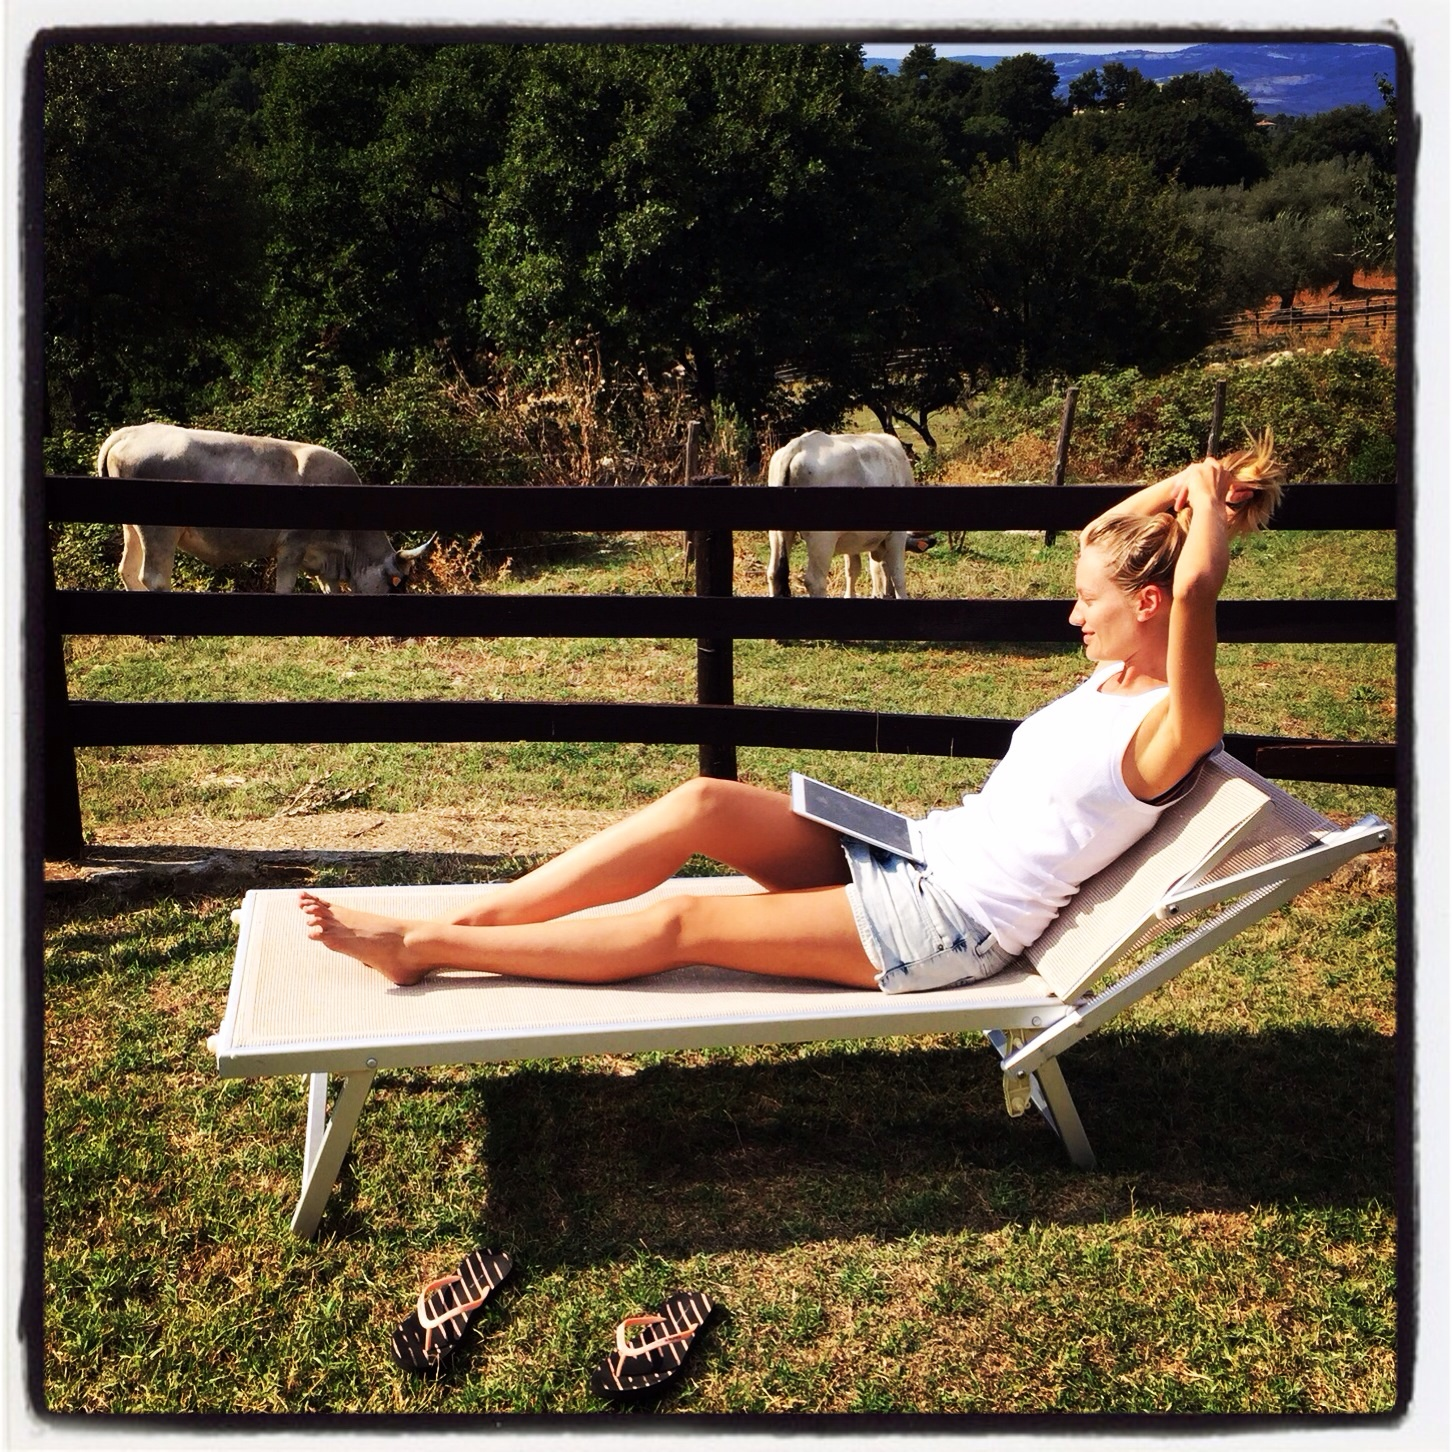 My office in Tuscany. Cows keeping me company while writing my post.